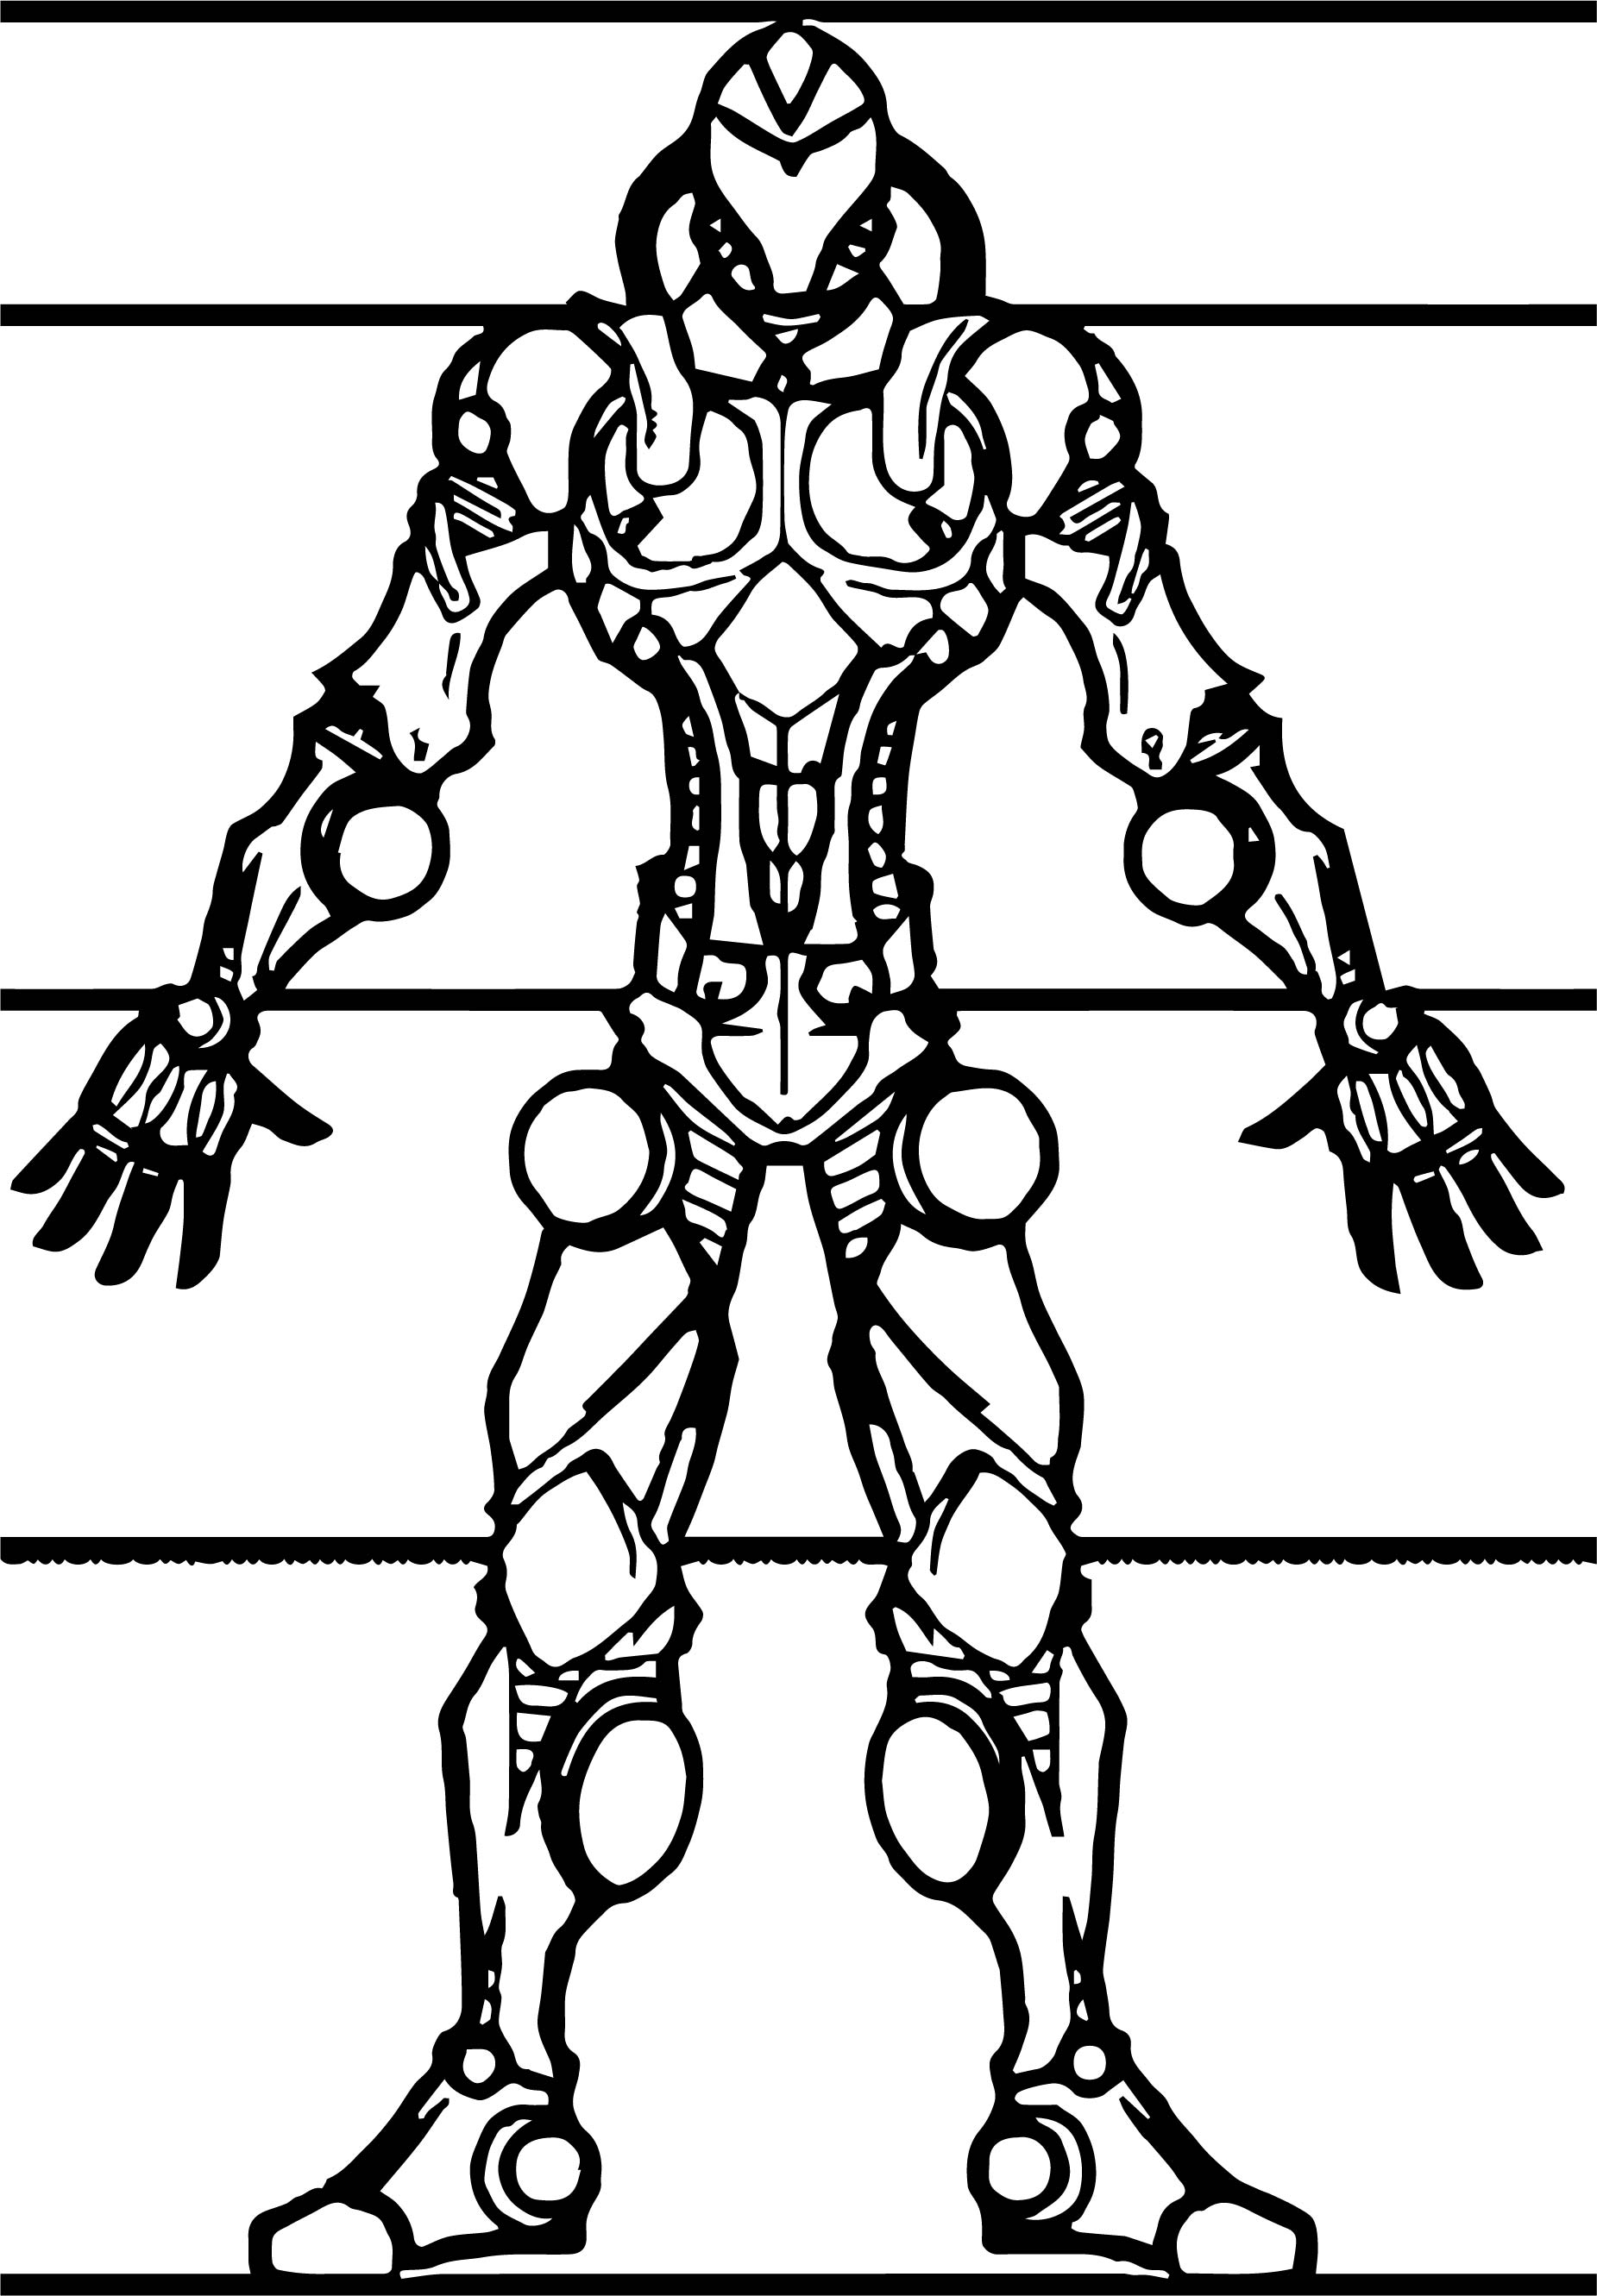 Characters Robot Front View Coloring Page